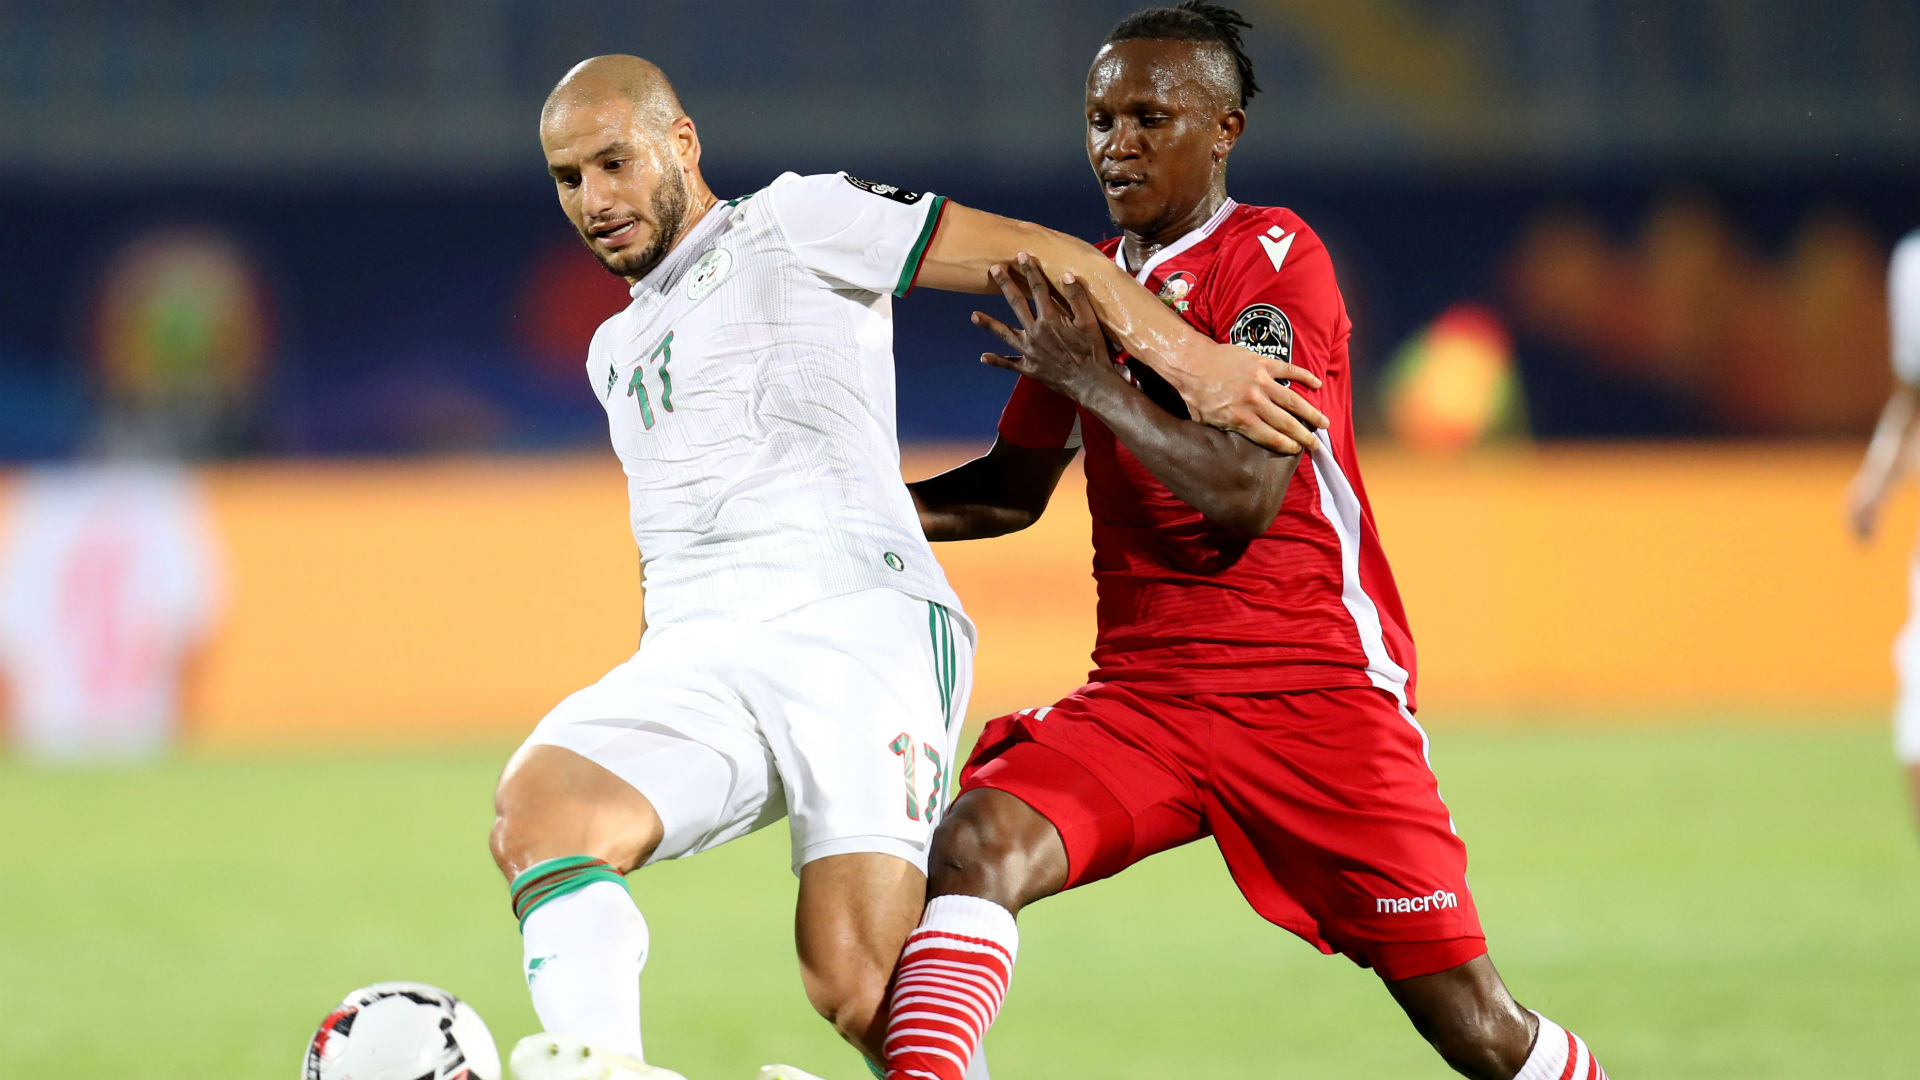 Afcon 2019: Algeria used to have good individuals but are now a good team - Guedioura